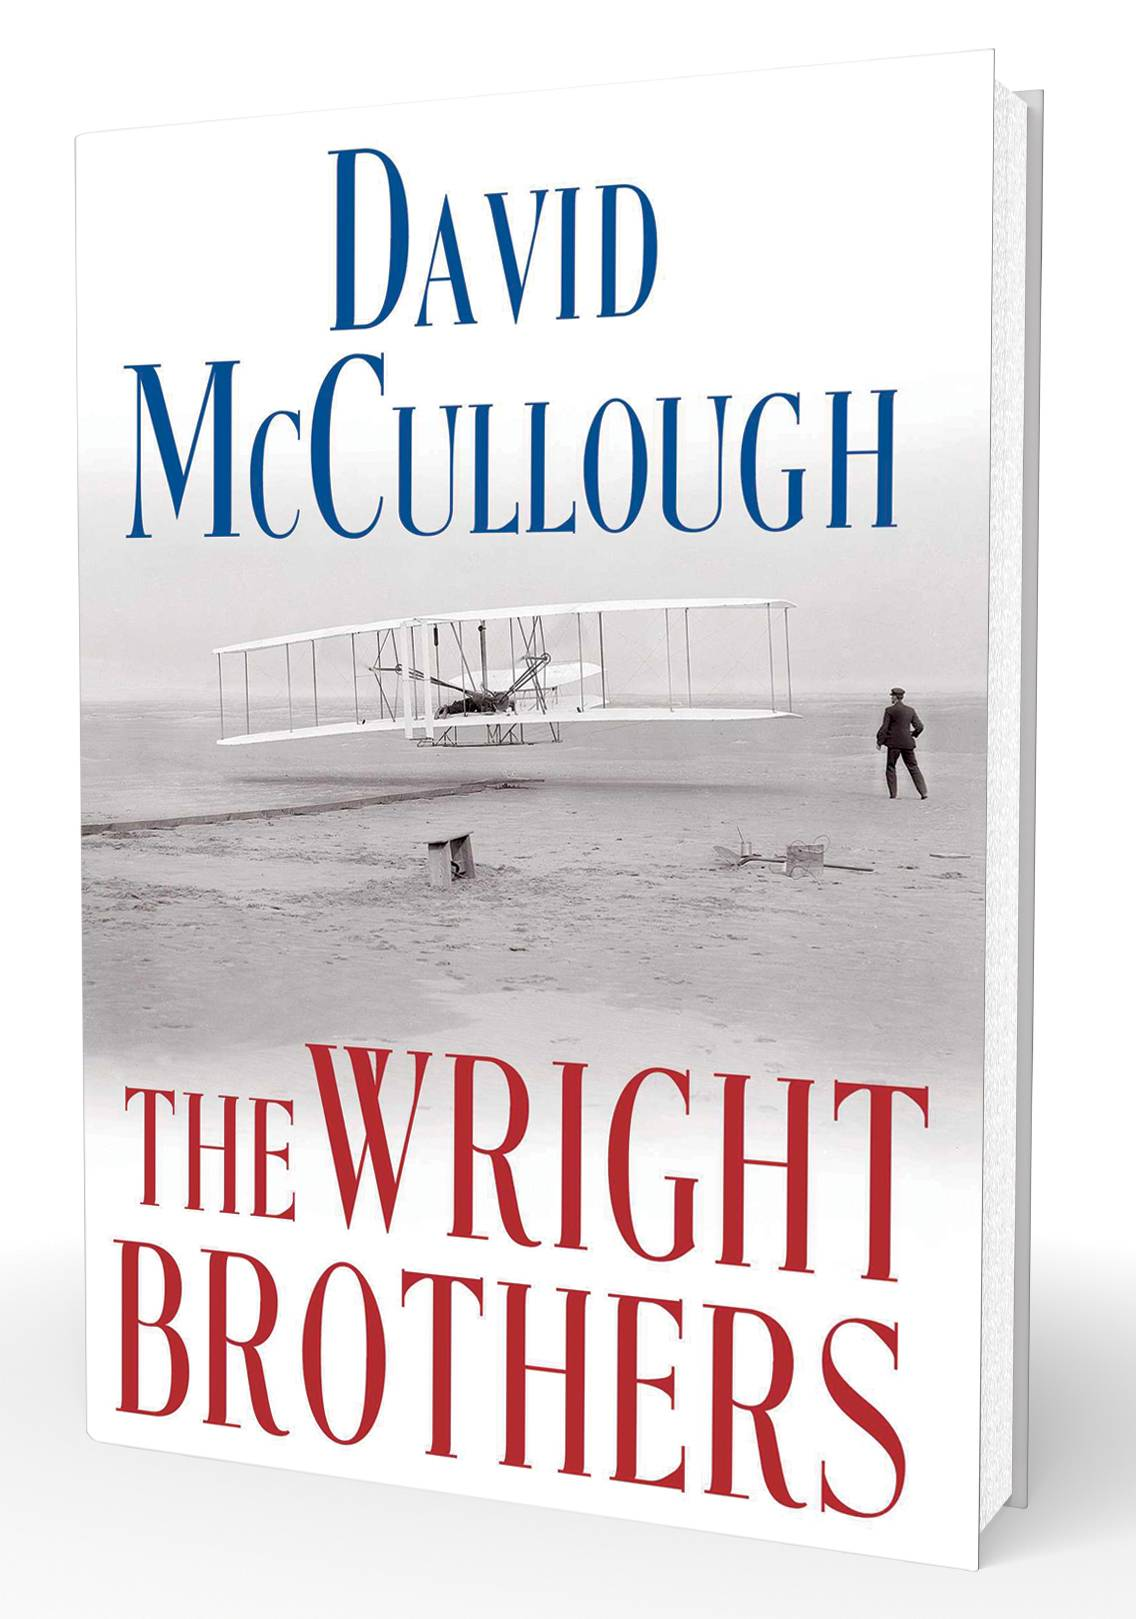 The brothers apparently succeeded where favored others had failed, including a better-funded flight attempt backed by funds from the War Department.